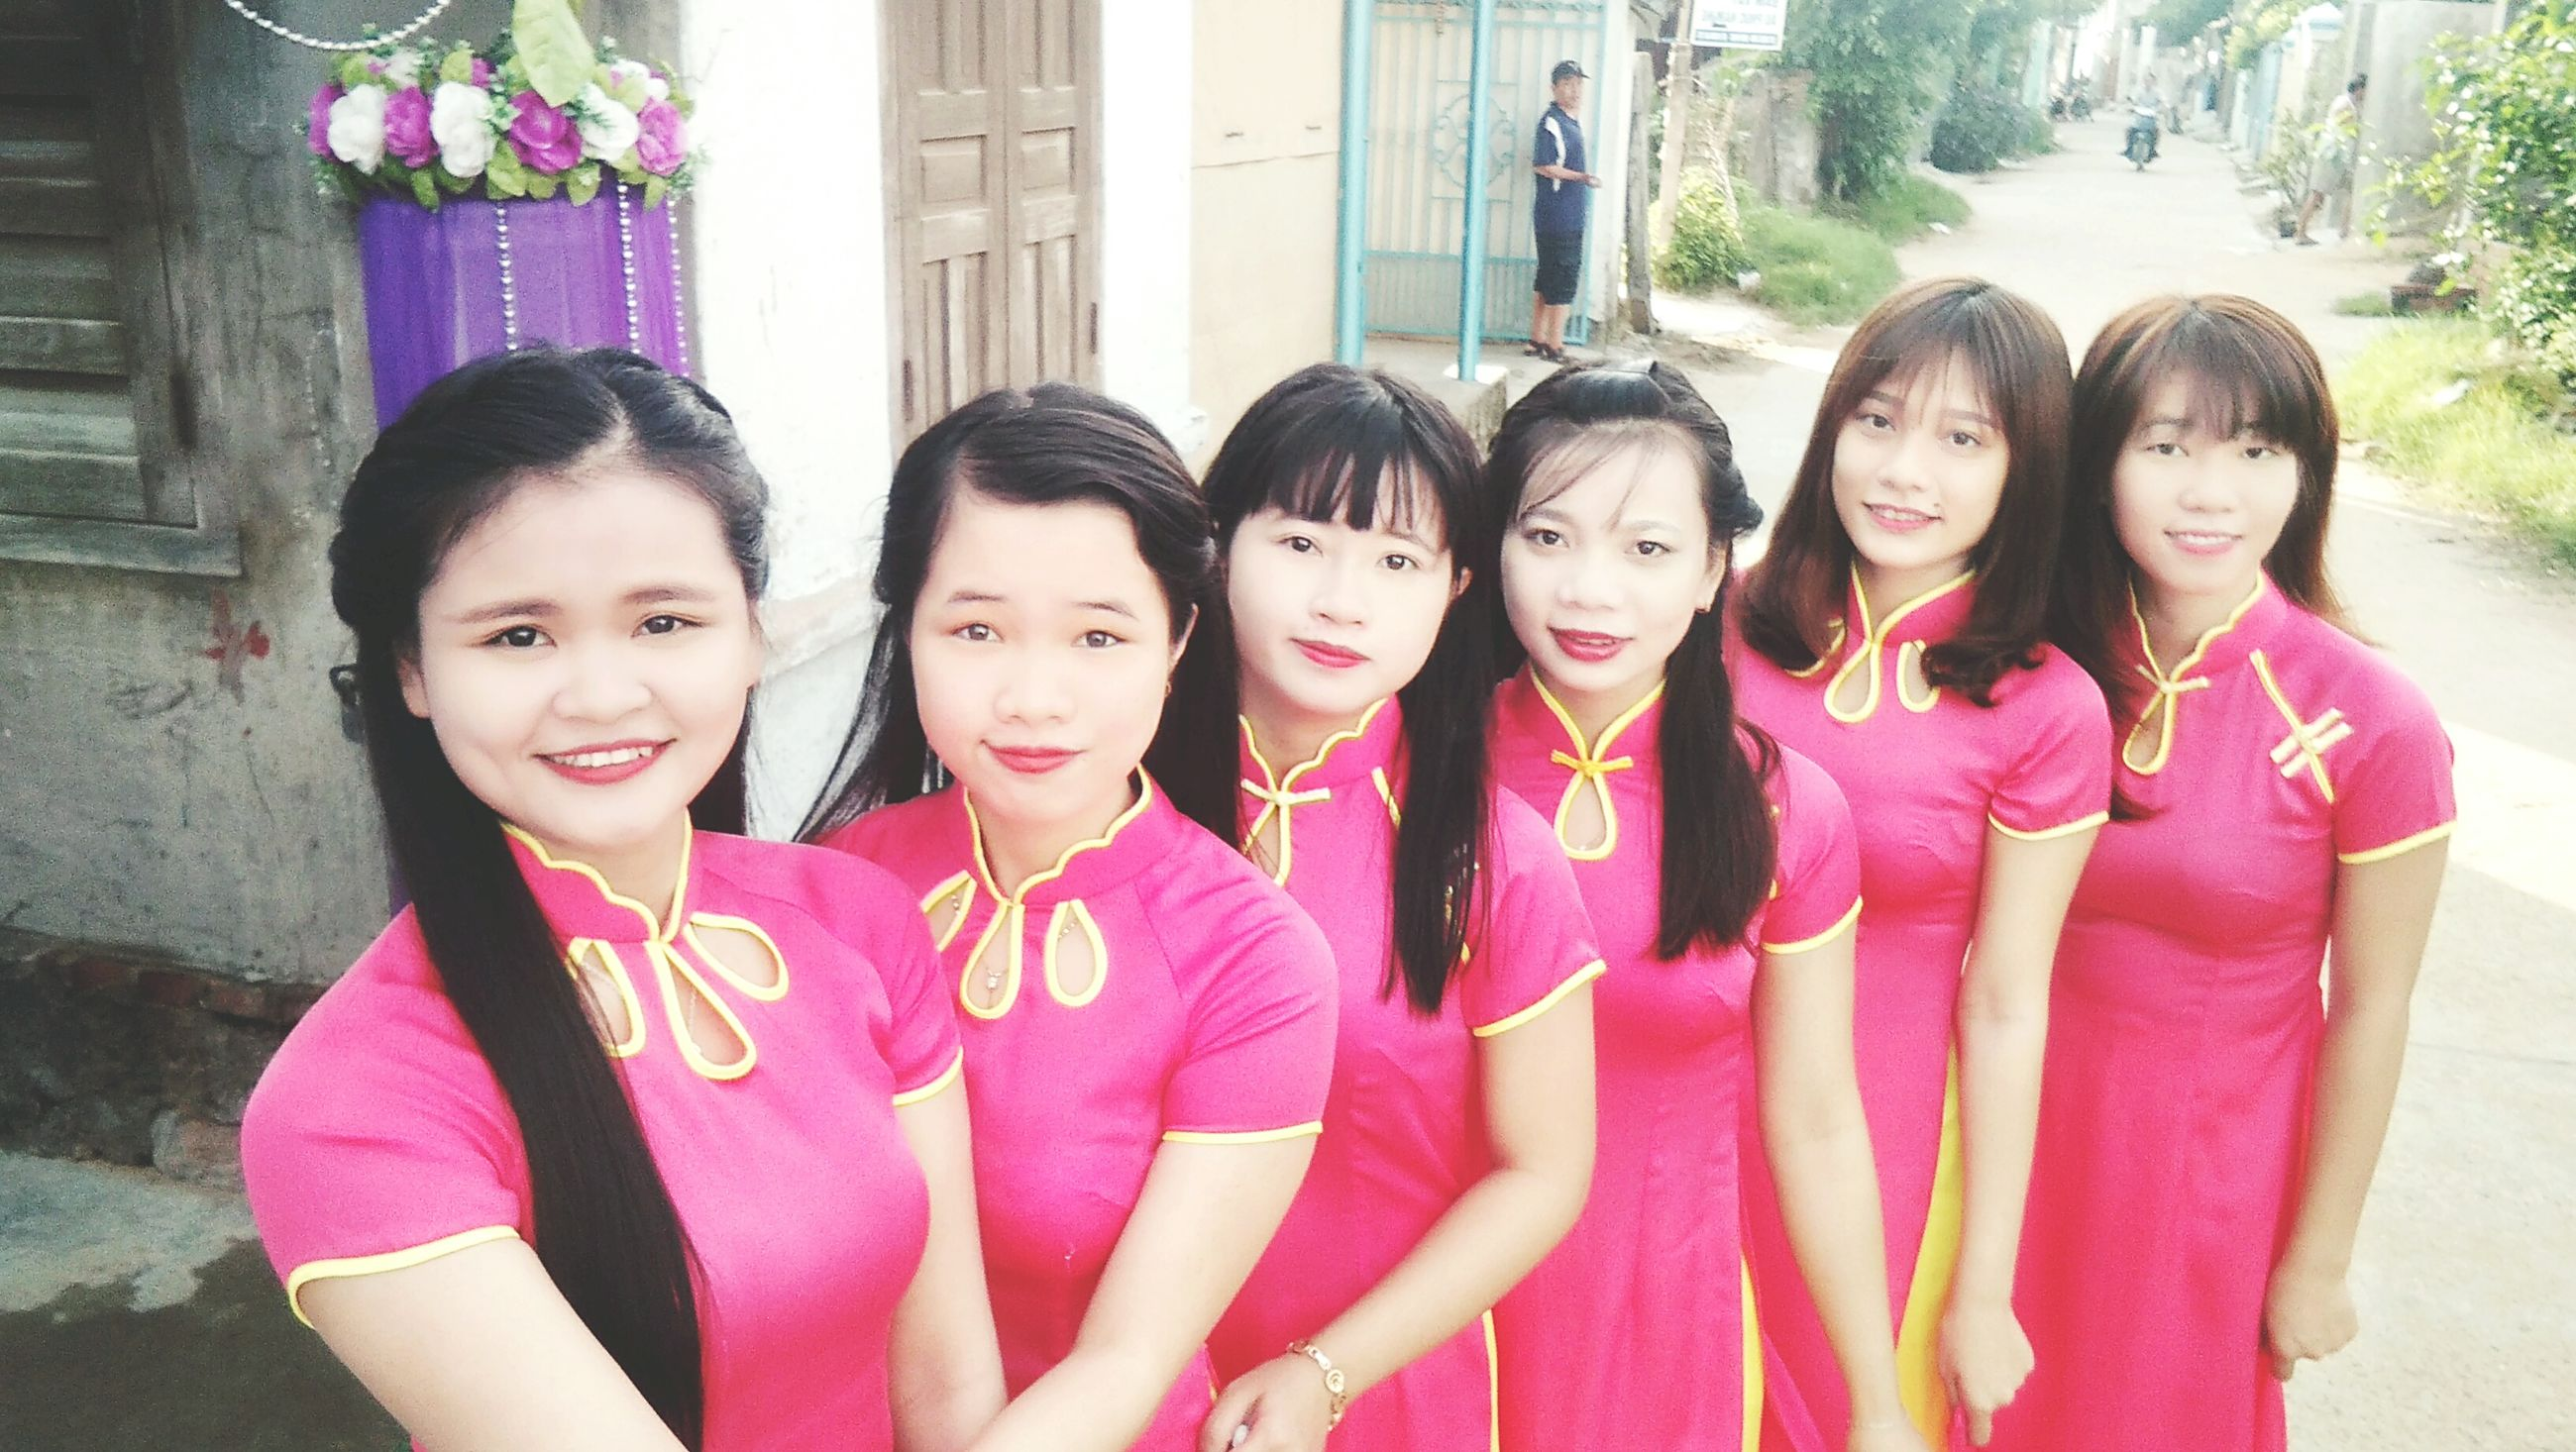 togetherness, young women, love, lifestyles, bonding, leisure activity, friendship, happiness, standing, portrait, teenage girls, looking at camera, smiling, side by side, girls, casual clothing, young adult, person, front view, friend, teenage boys, pink color